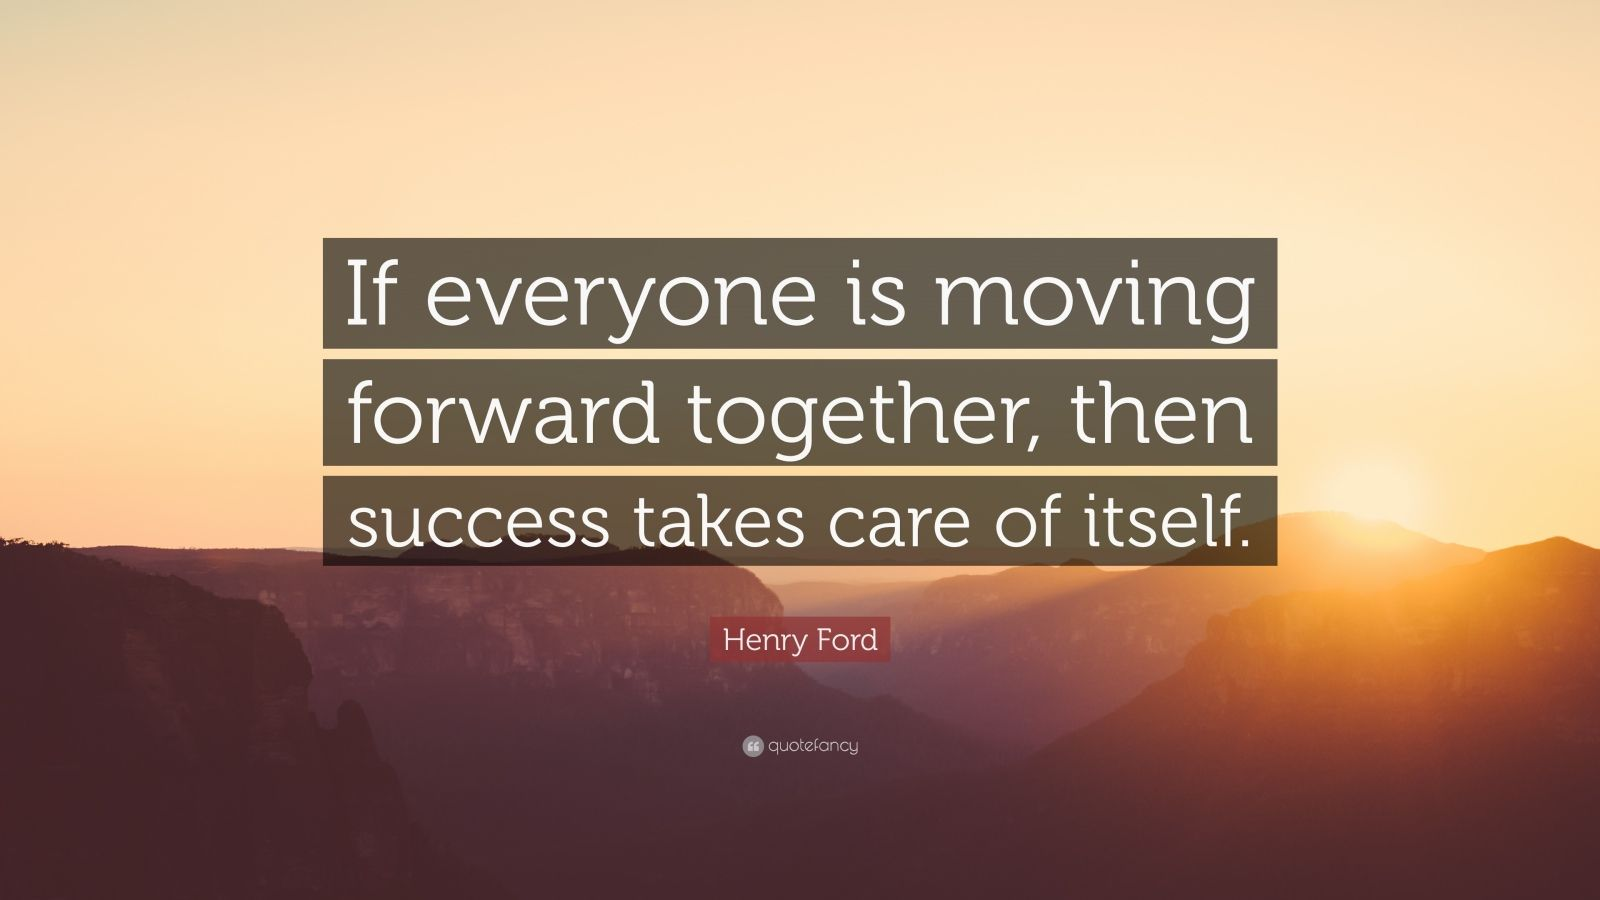 henry ford quote   u201cif everyone is moving forward together